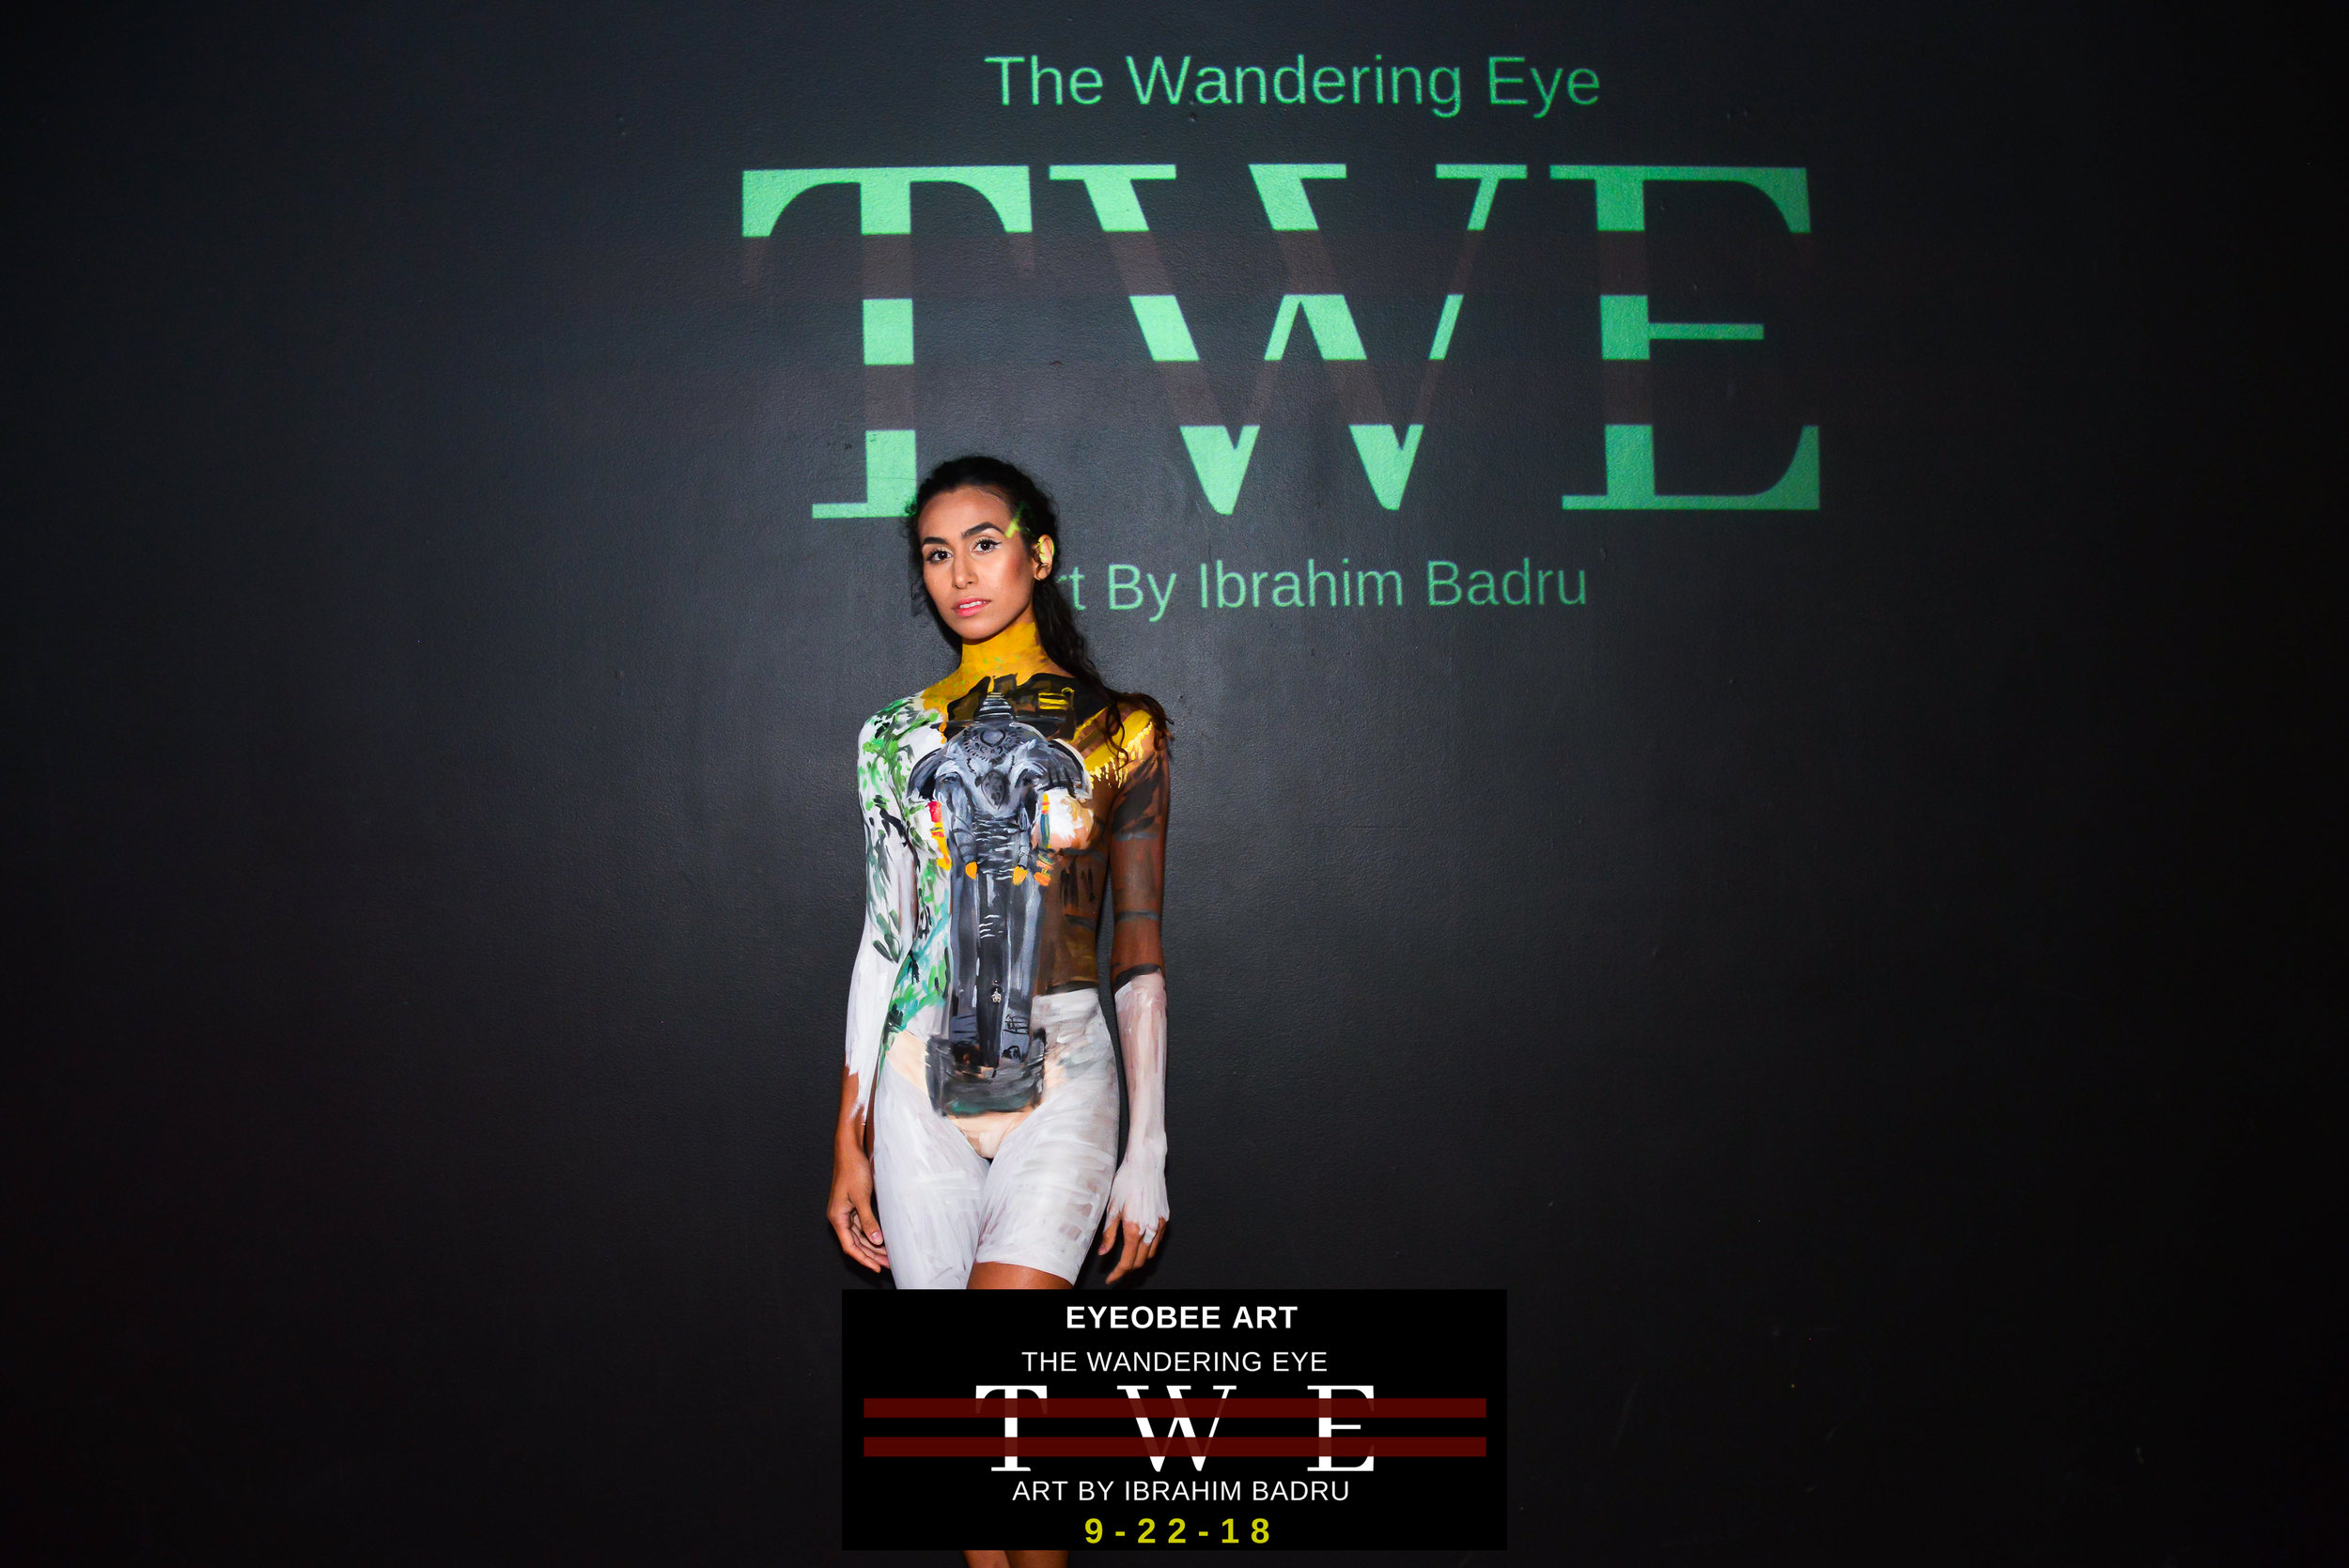 The Wandering Eye Art by Ibrahim Badru eyeObee ART Thailand dmv